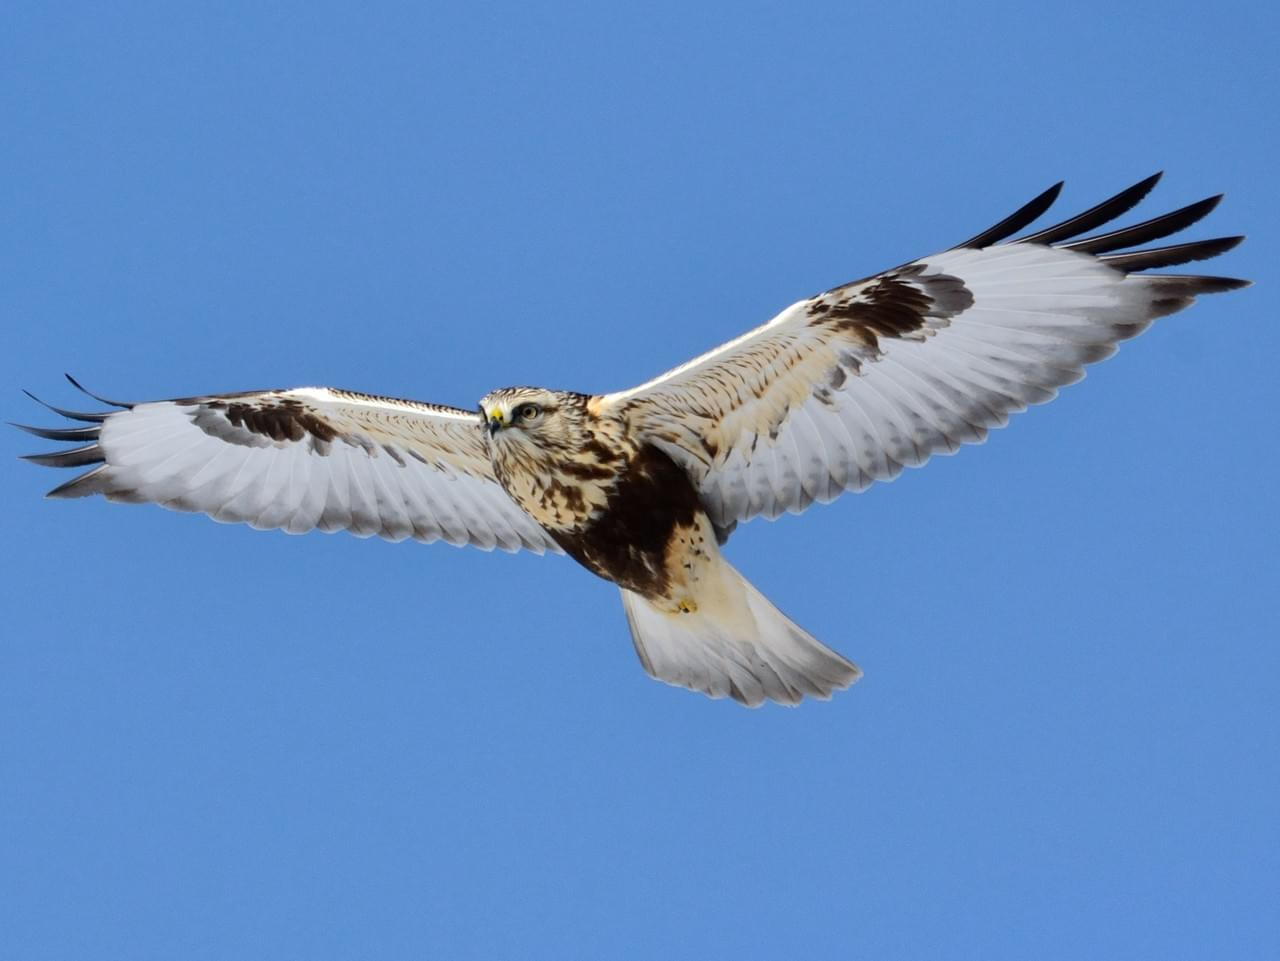 The winter hawk, a rough-legged hawk ( Buteo lagopus ). The dark carpal patches and belly band are their diagnostic features.  Photo credit:  Rodney Crice via Macauley Library .